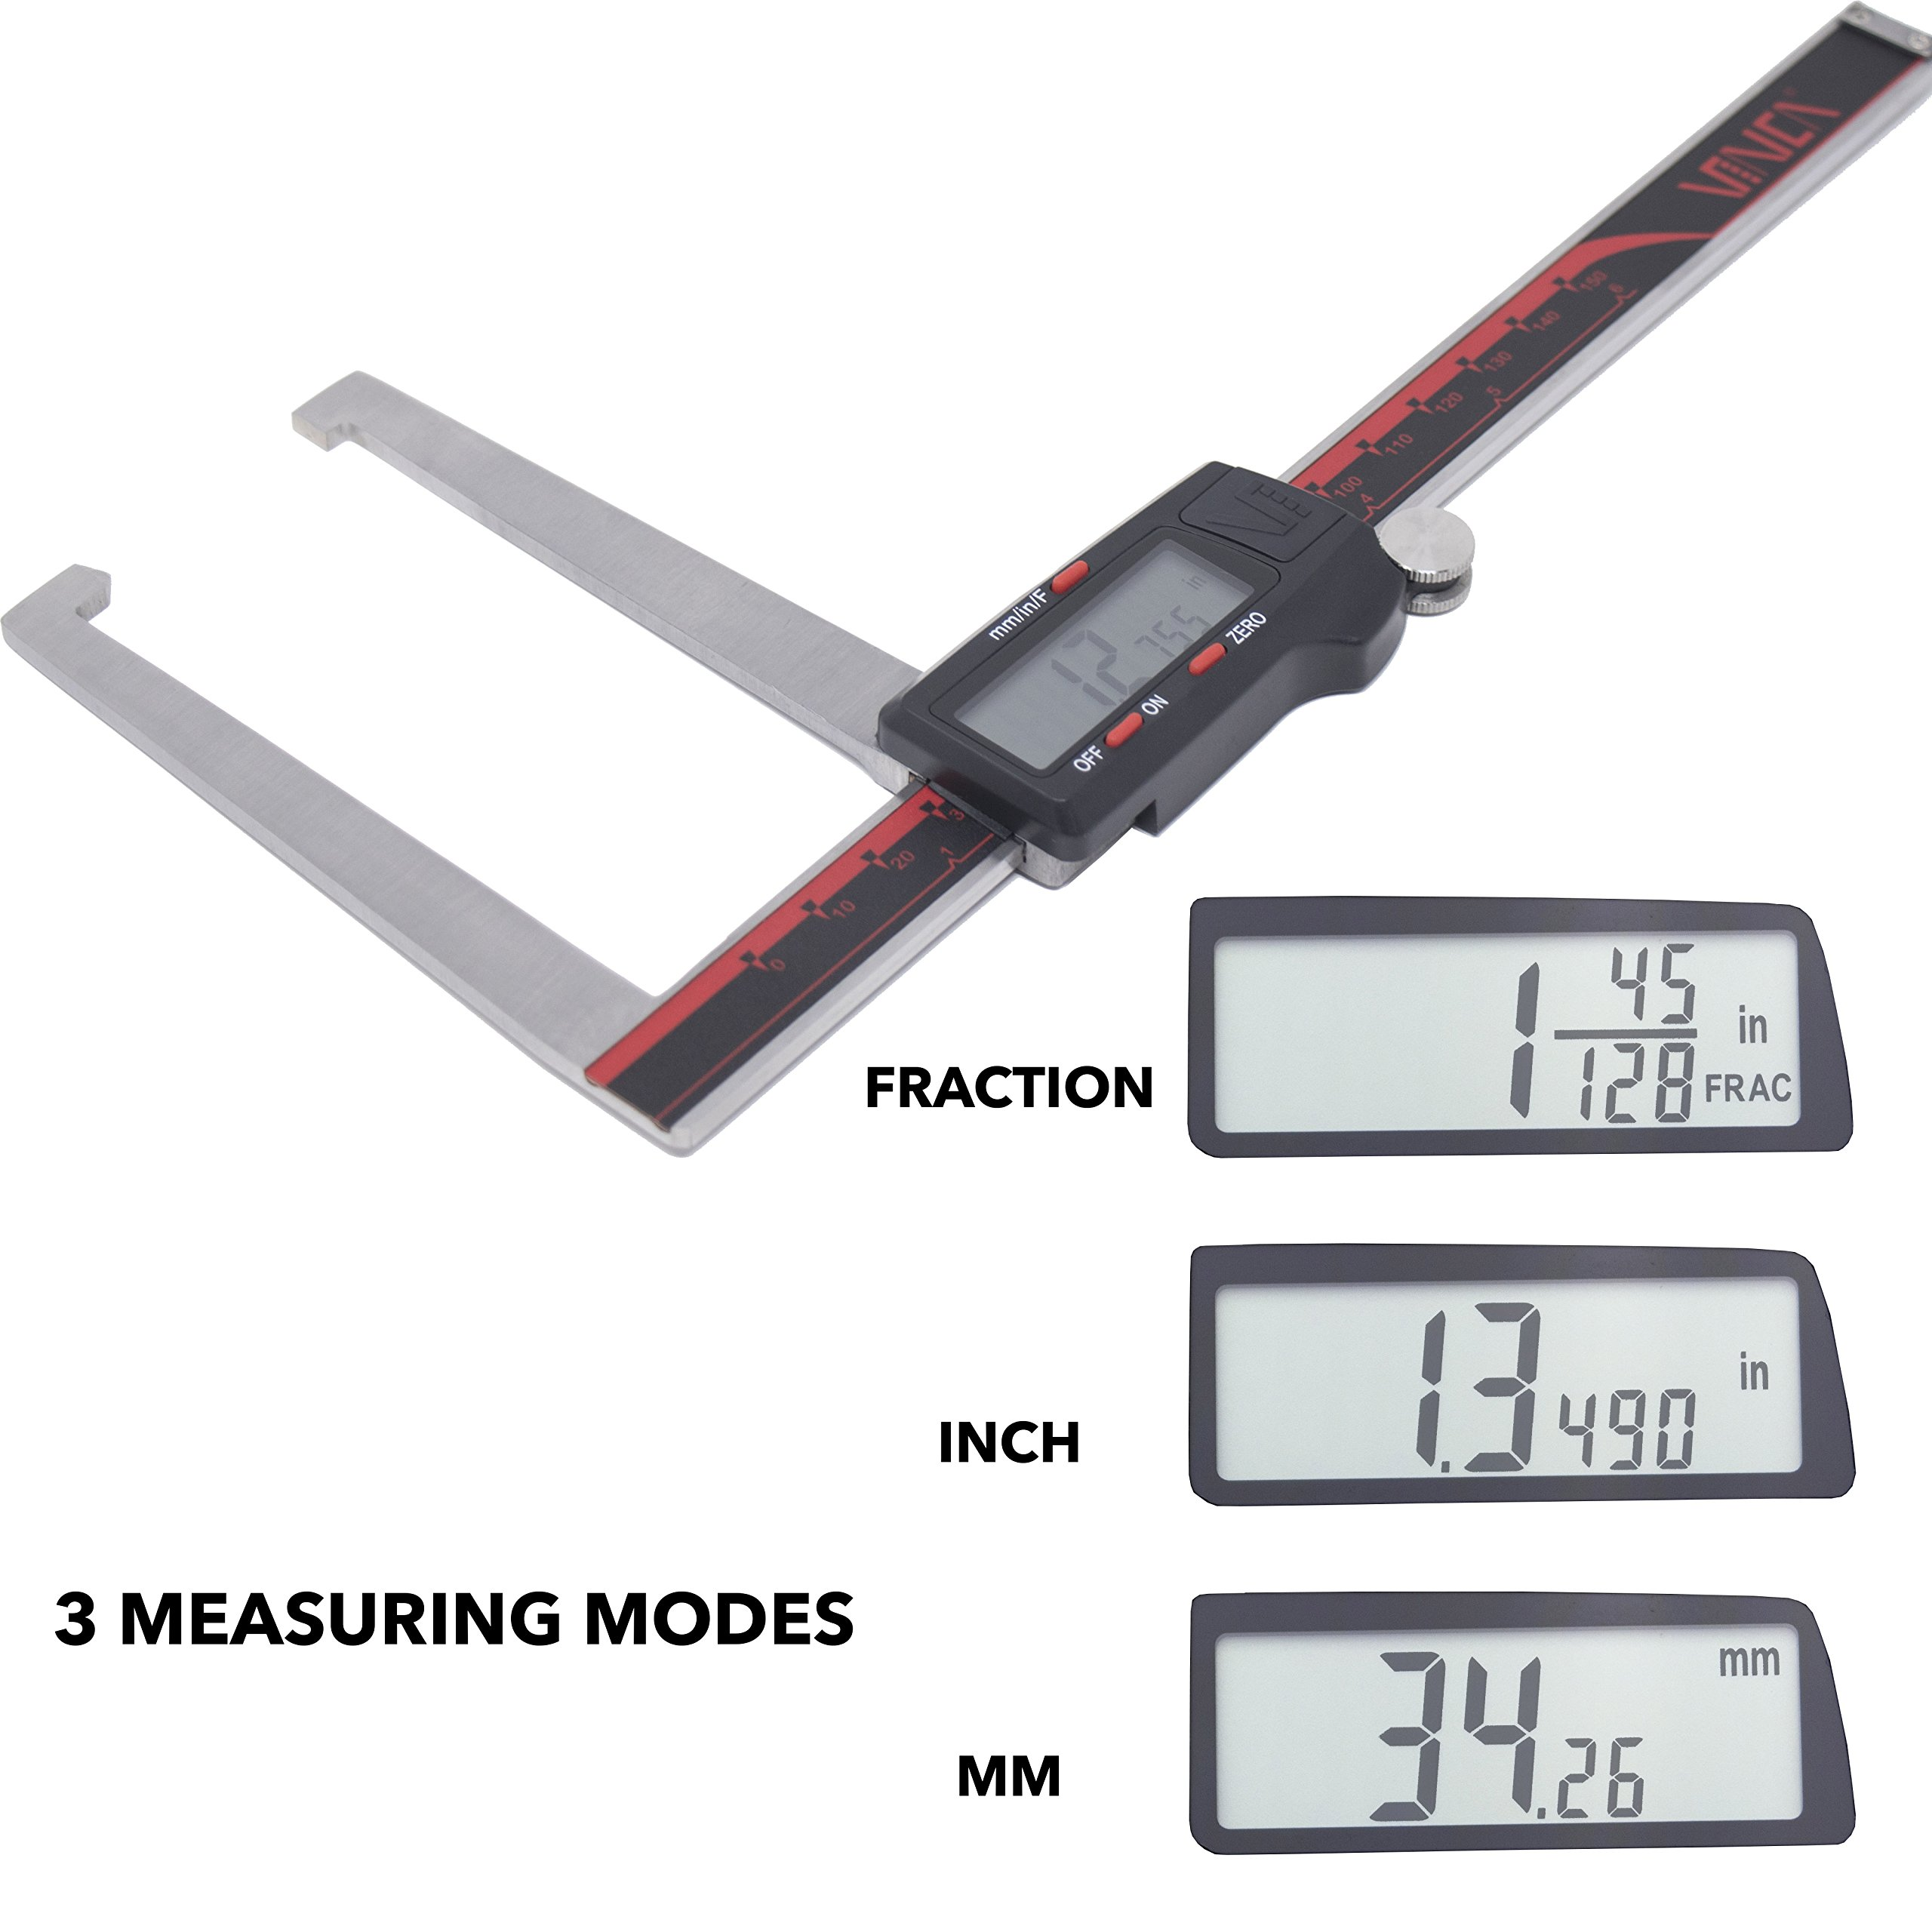 VINCA DRGA-0605 Quality Electronic Digital Break Rotor Gauge inch/Metric/Fractions Conversion 0-6 Inch/150 mm Stainless Steel Body Red/Black Extra Large LCD Screen Auto Off Featured Measuring Tool by VINCA (Image #1)